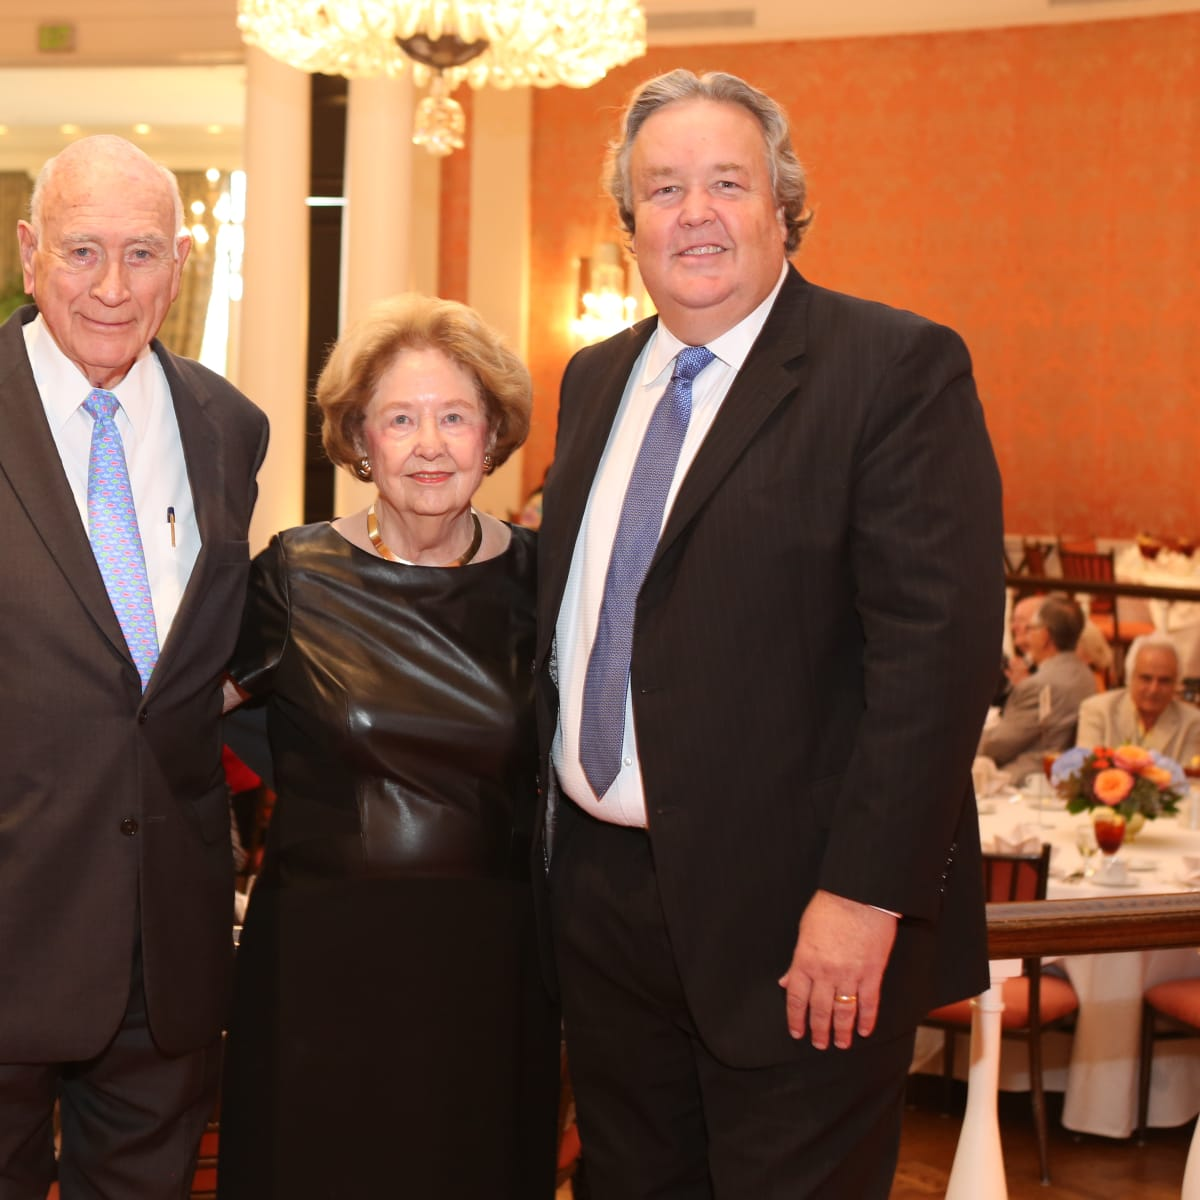 News, Shelby, Houston Museum of Natural Science Luncheon, Oct. 2015, Truett Latimer, Harriet Latimer, Joel Bartsch